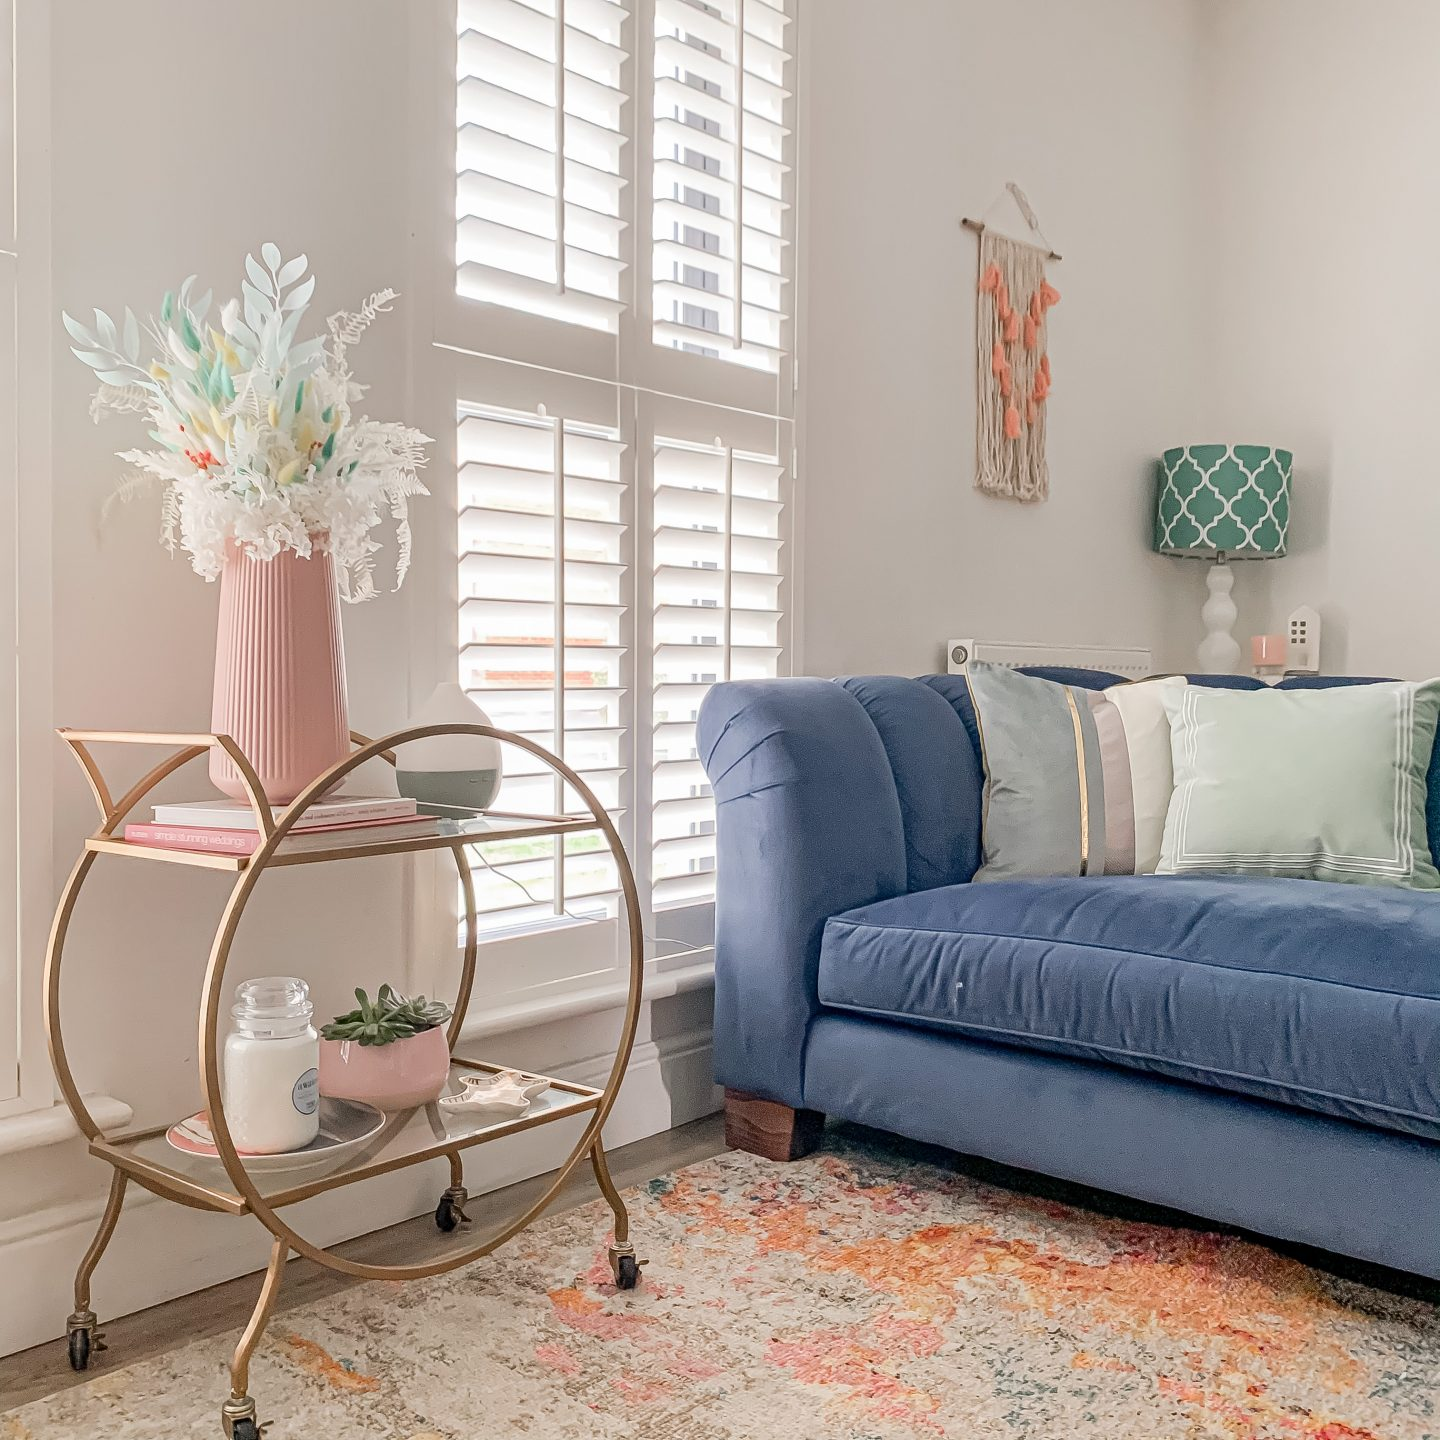 5 EASY WAYS TO ADD SPRING TOUCHES TO YOUR HOME